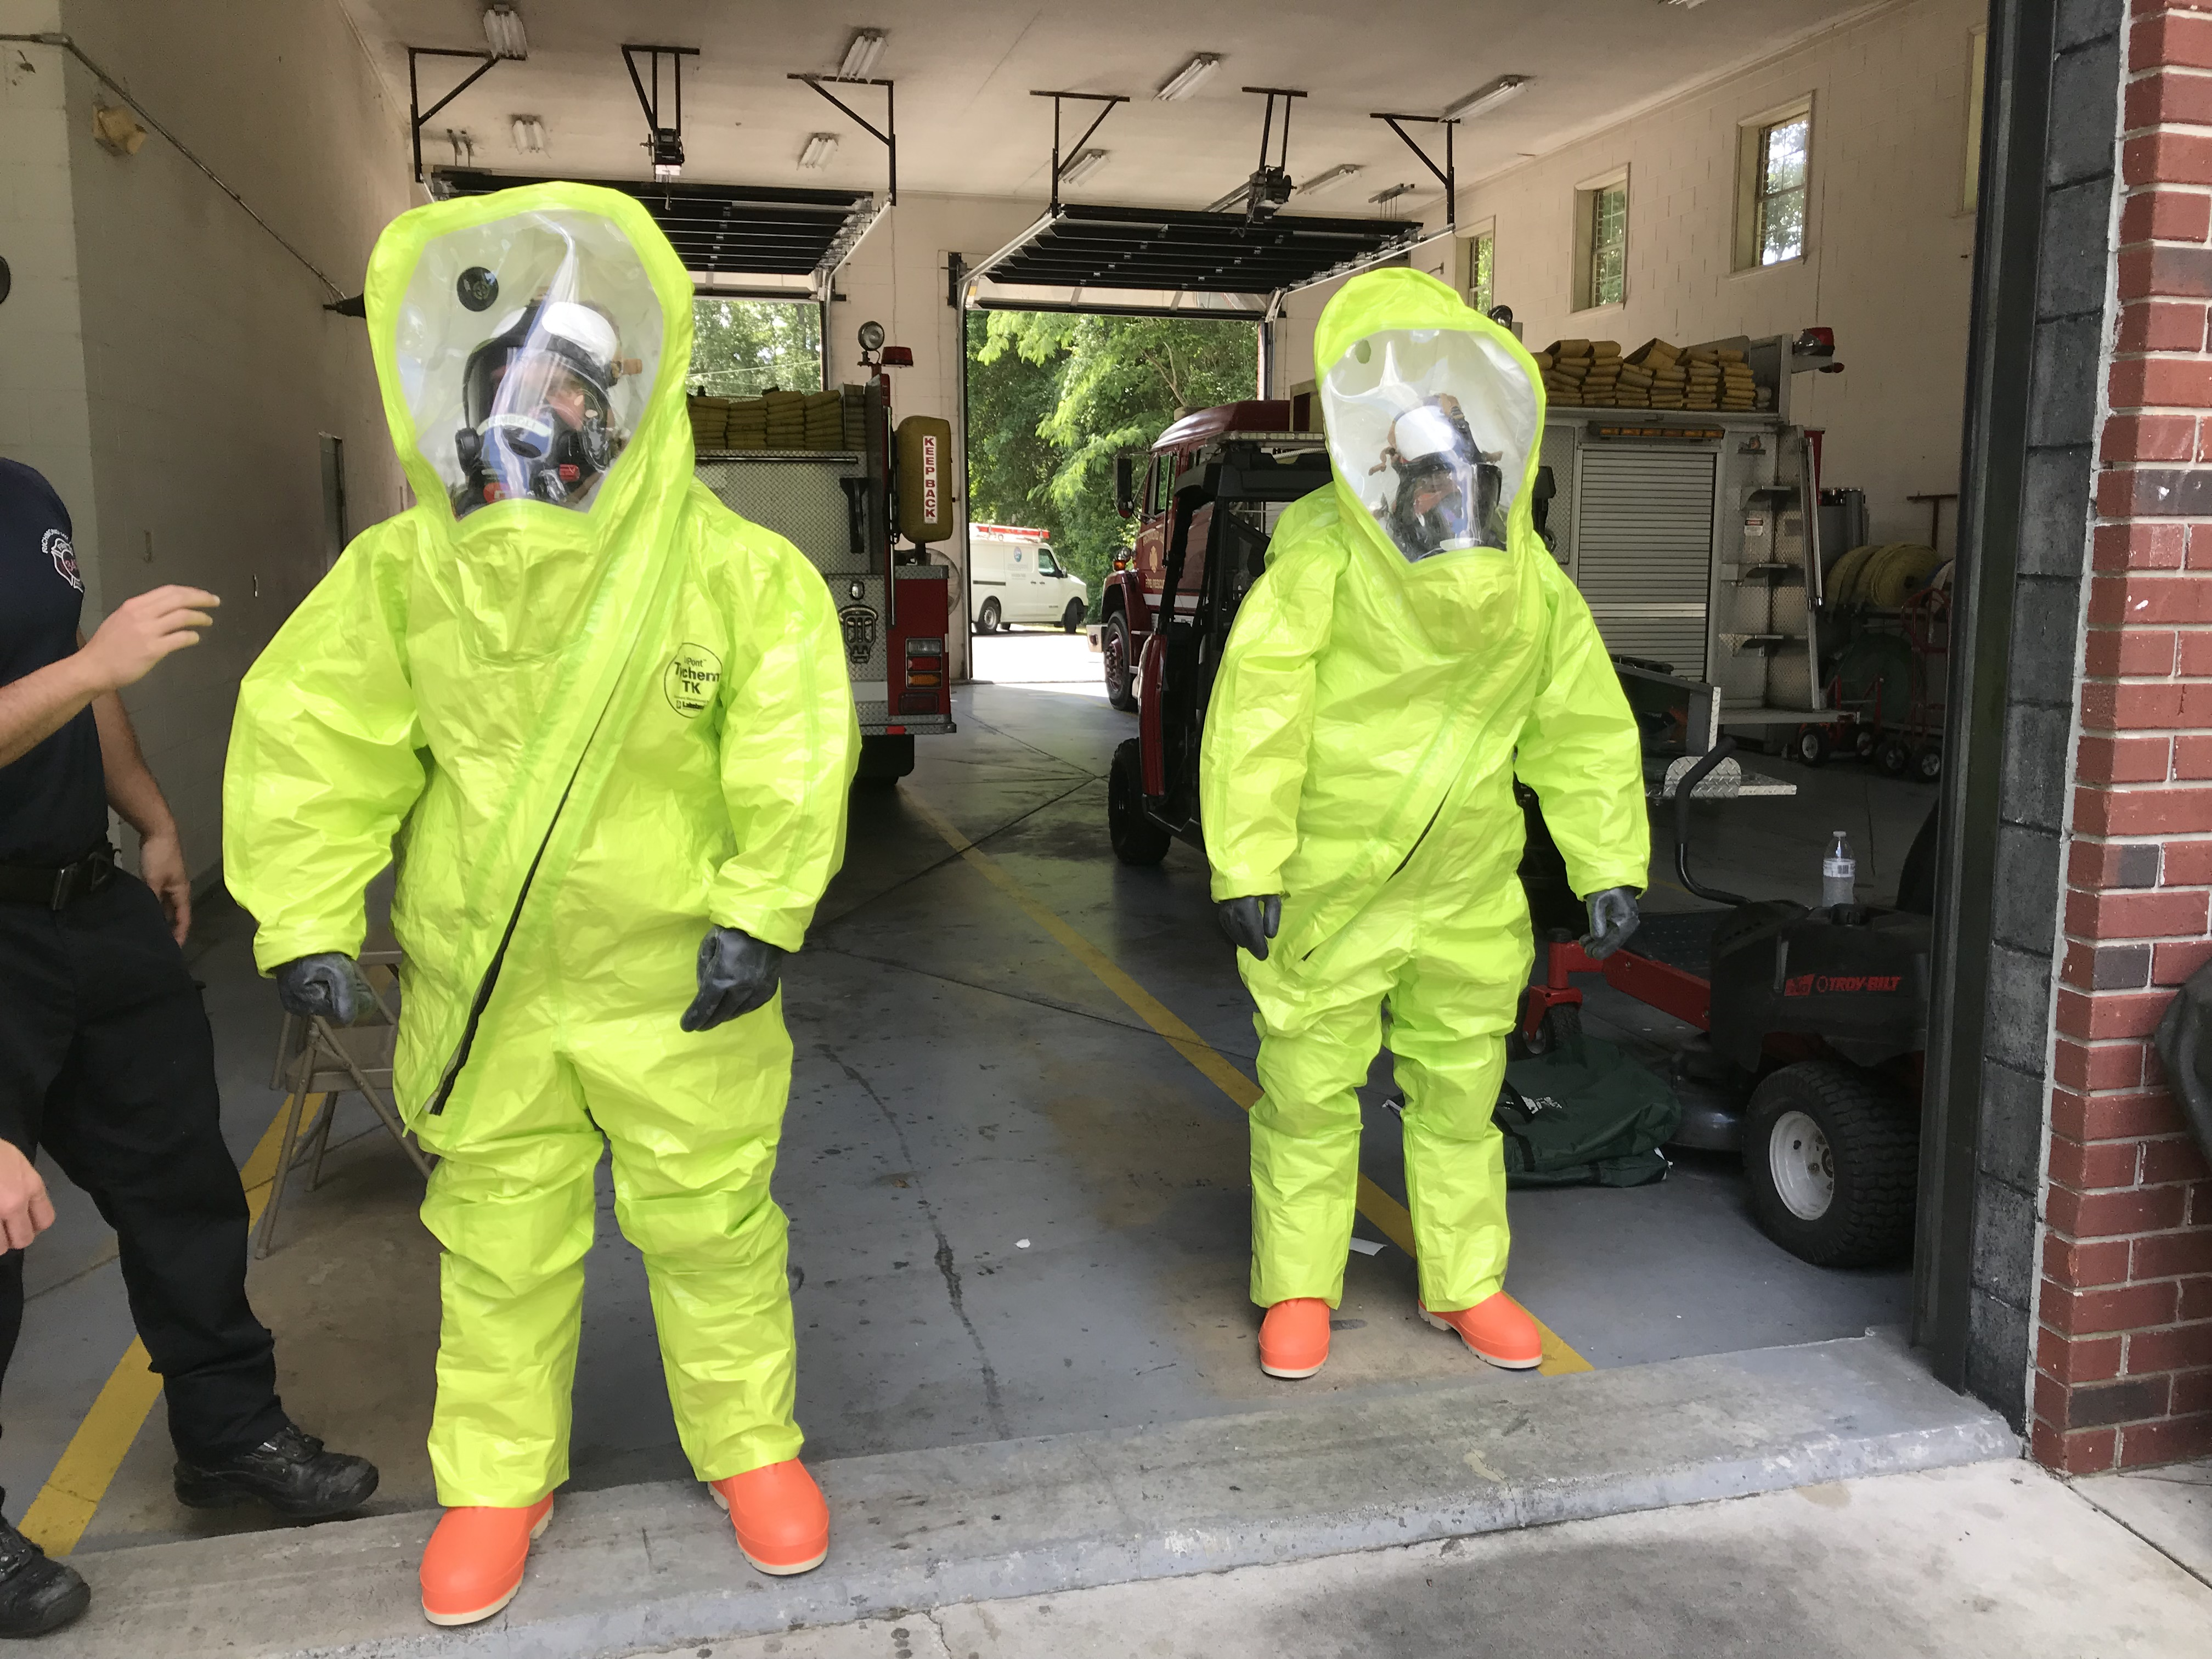 Two firefighters in hazmat suits